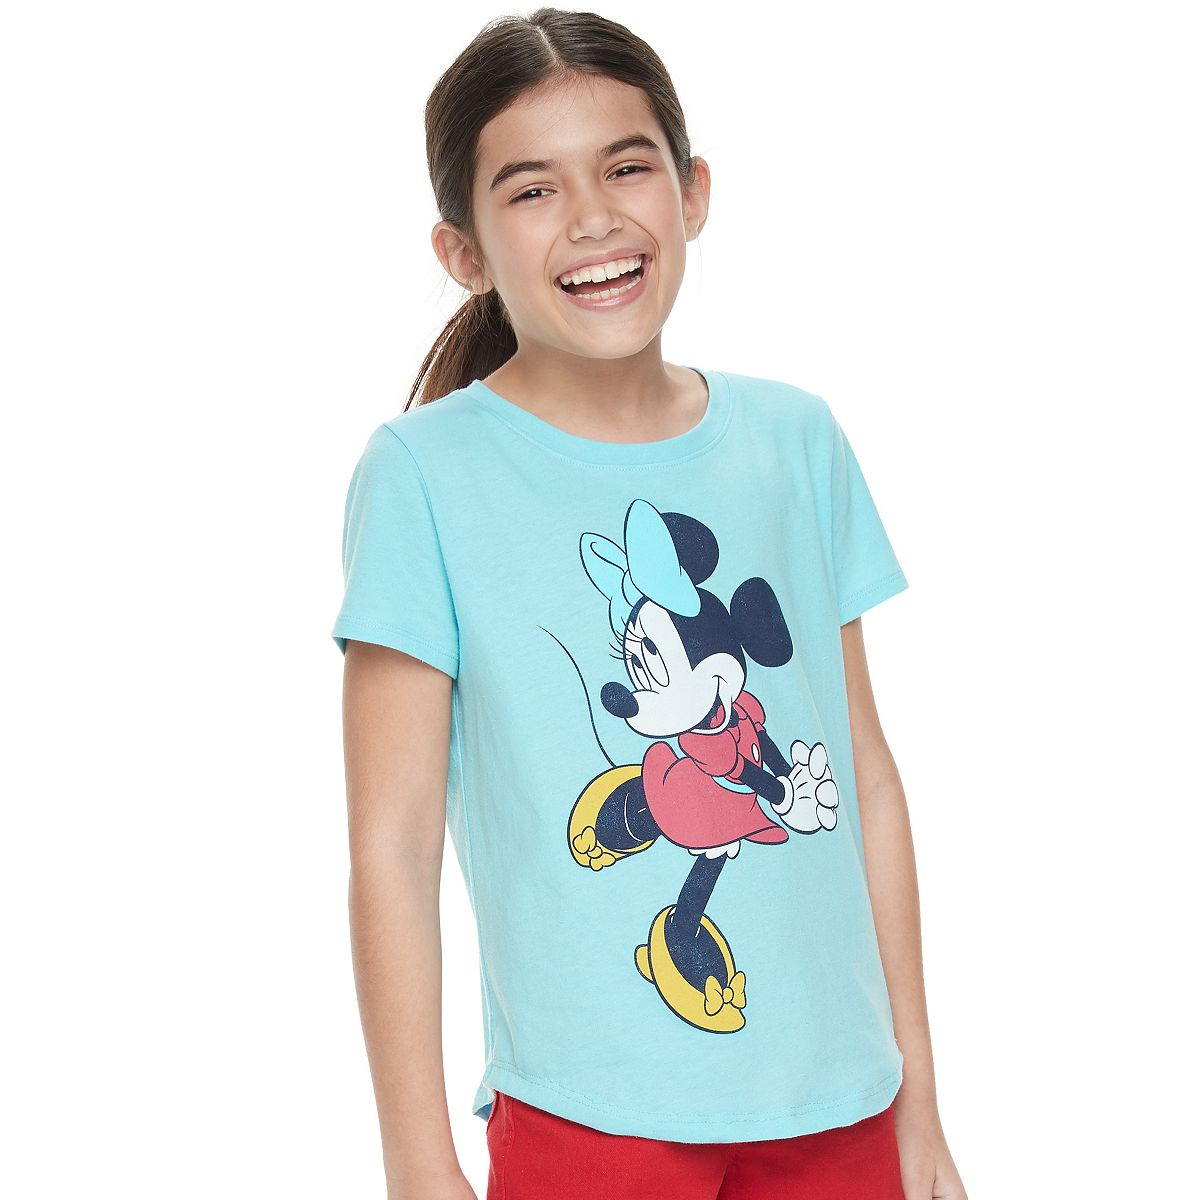 Disney's Mickey & Minnie Mouse Classic Graphic Tops by Family Fun 2QDky